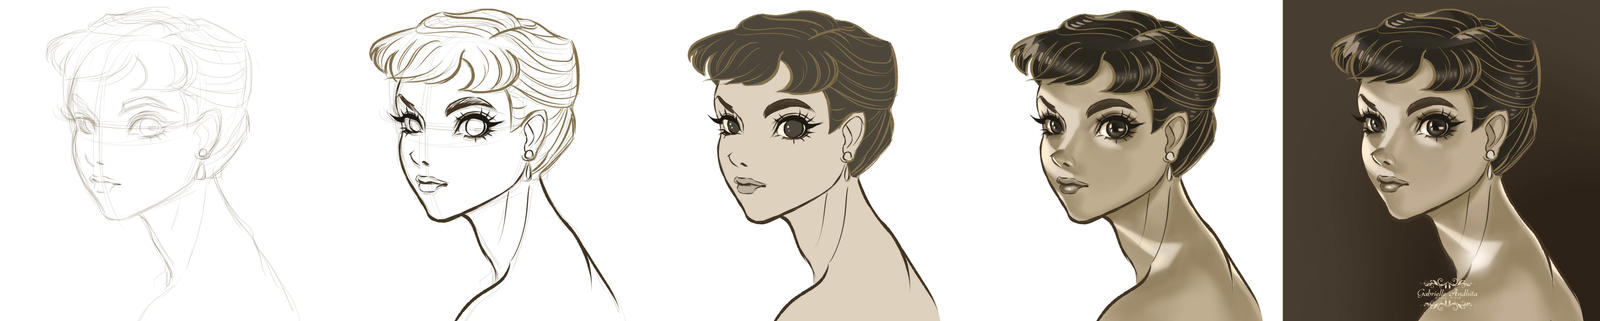 Step-by-step of Audrey Hepburn's drawing